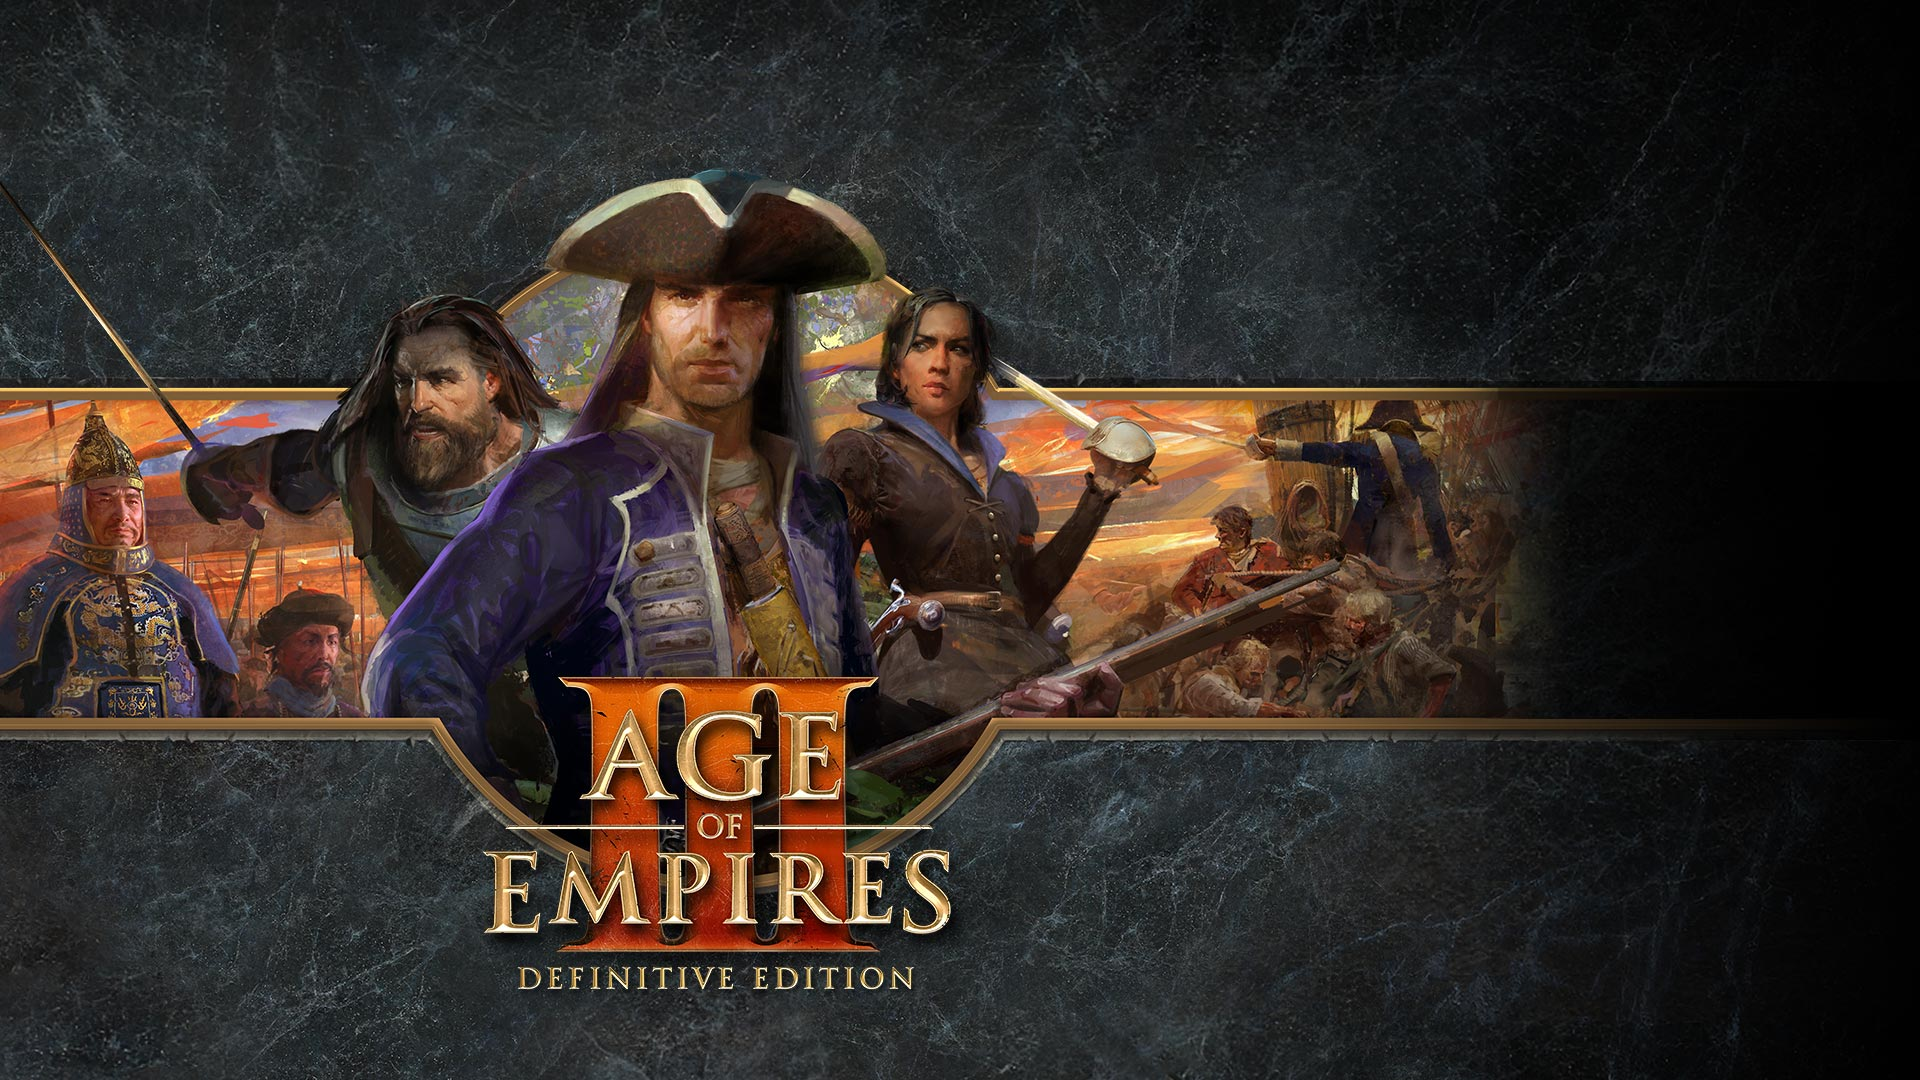 Age of Empires III: Definitive Edition, des personnages prennent la pose